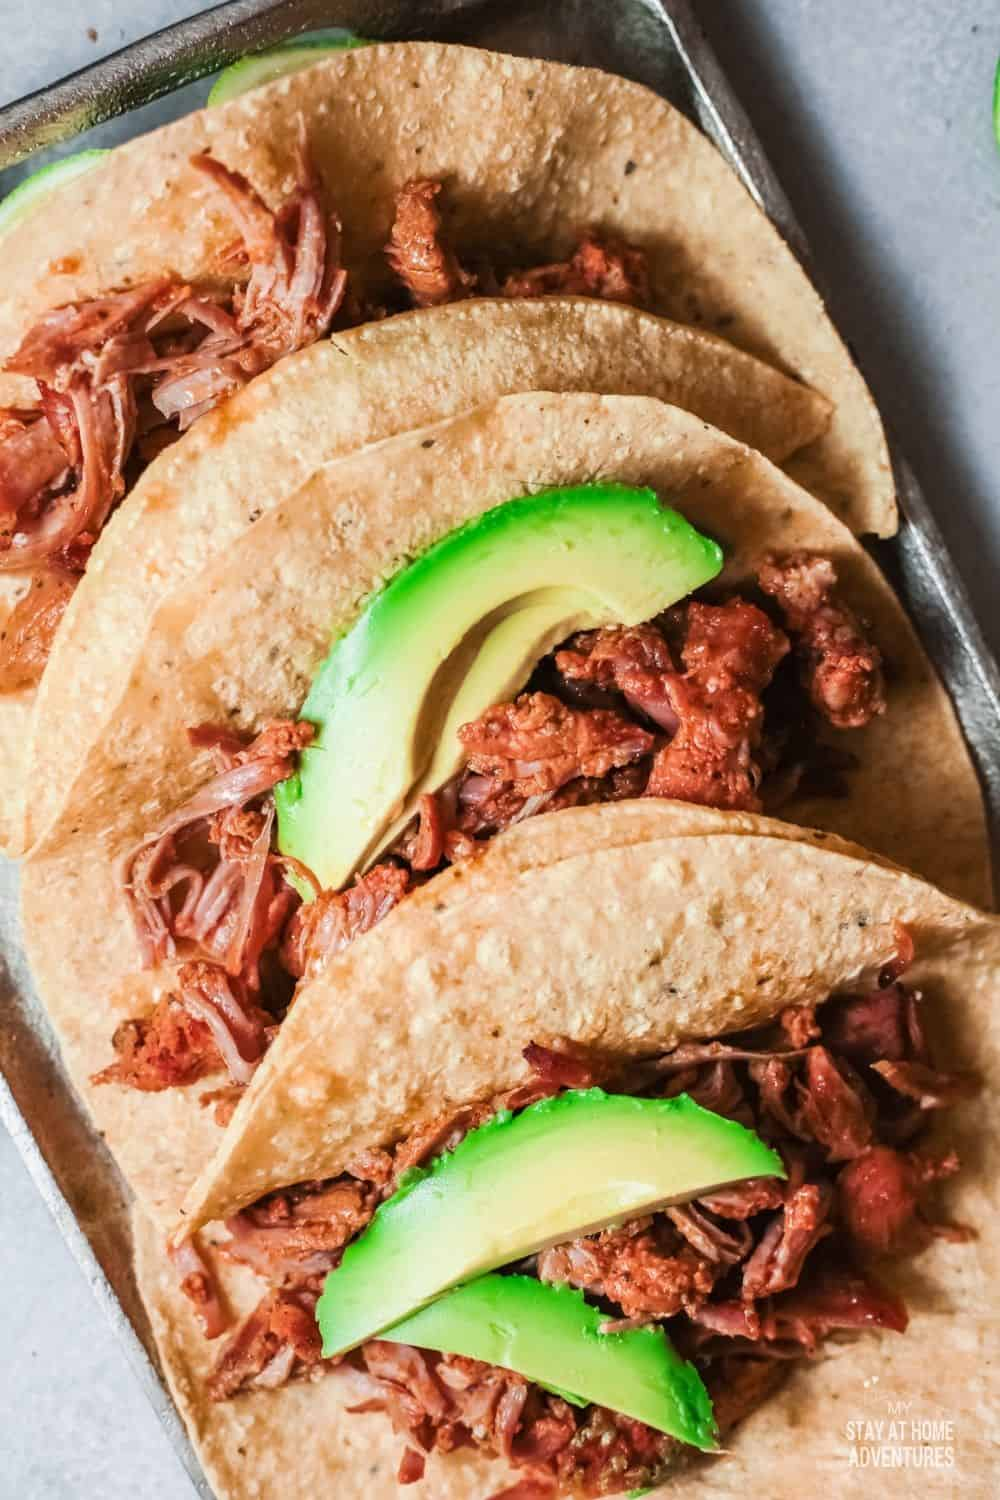 Learn all you need to know about Pork Tacos (Tacos al Pasto) from history to how to make them using an Instant Pot. #tacos #porktacos #instantpot via @mystayathome